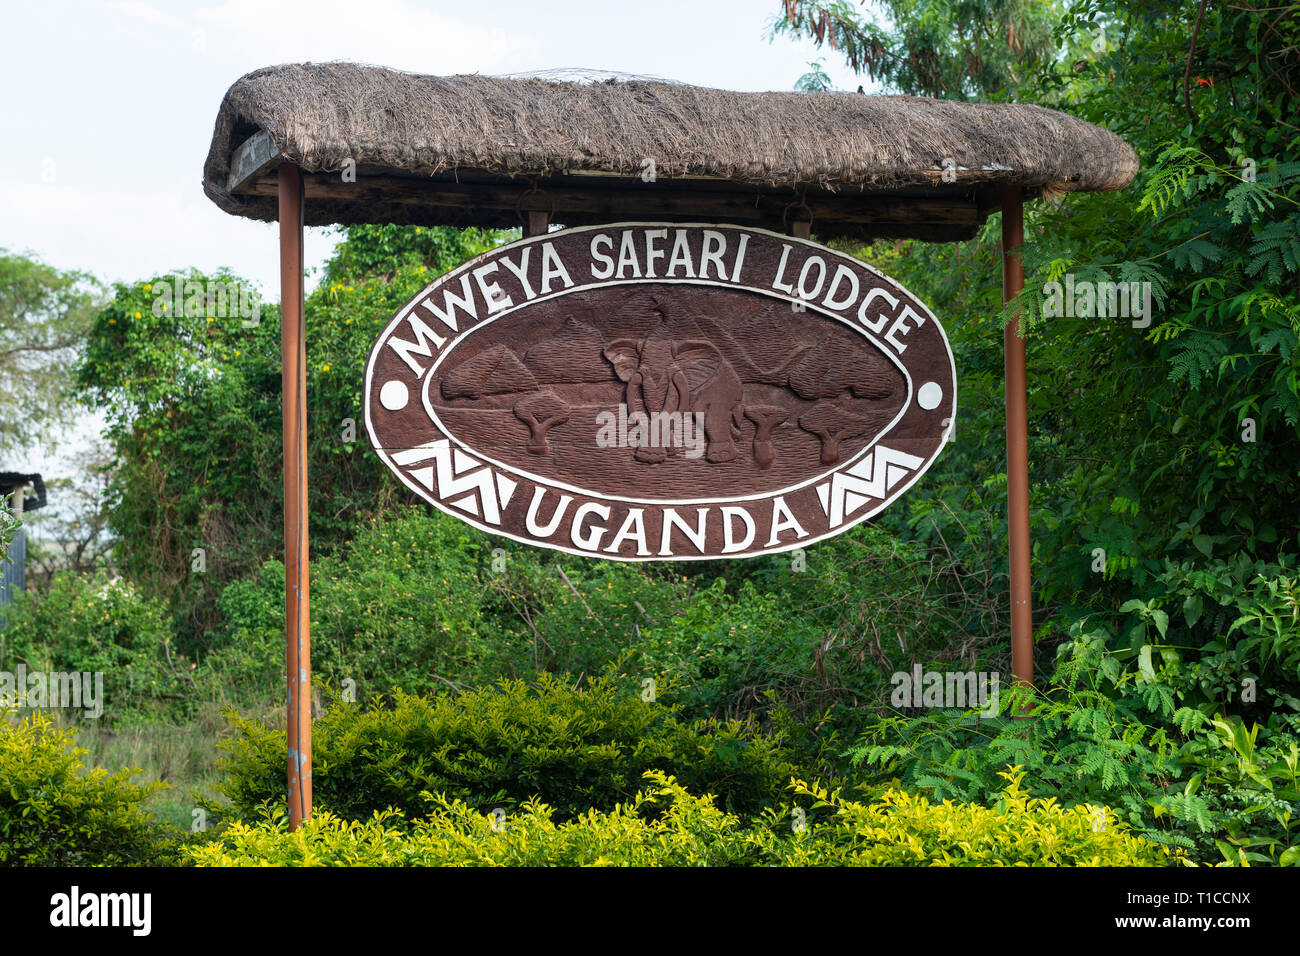 Sign board for Mweya Safari Lodge within Queen Elizabeth National Park in South West Uganda, East Africa - Stock Image